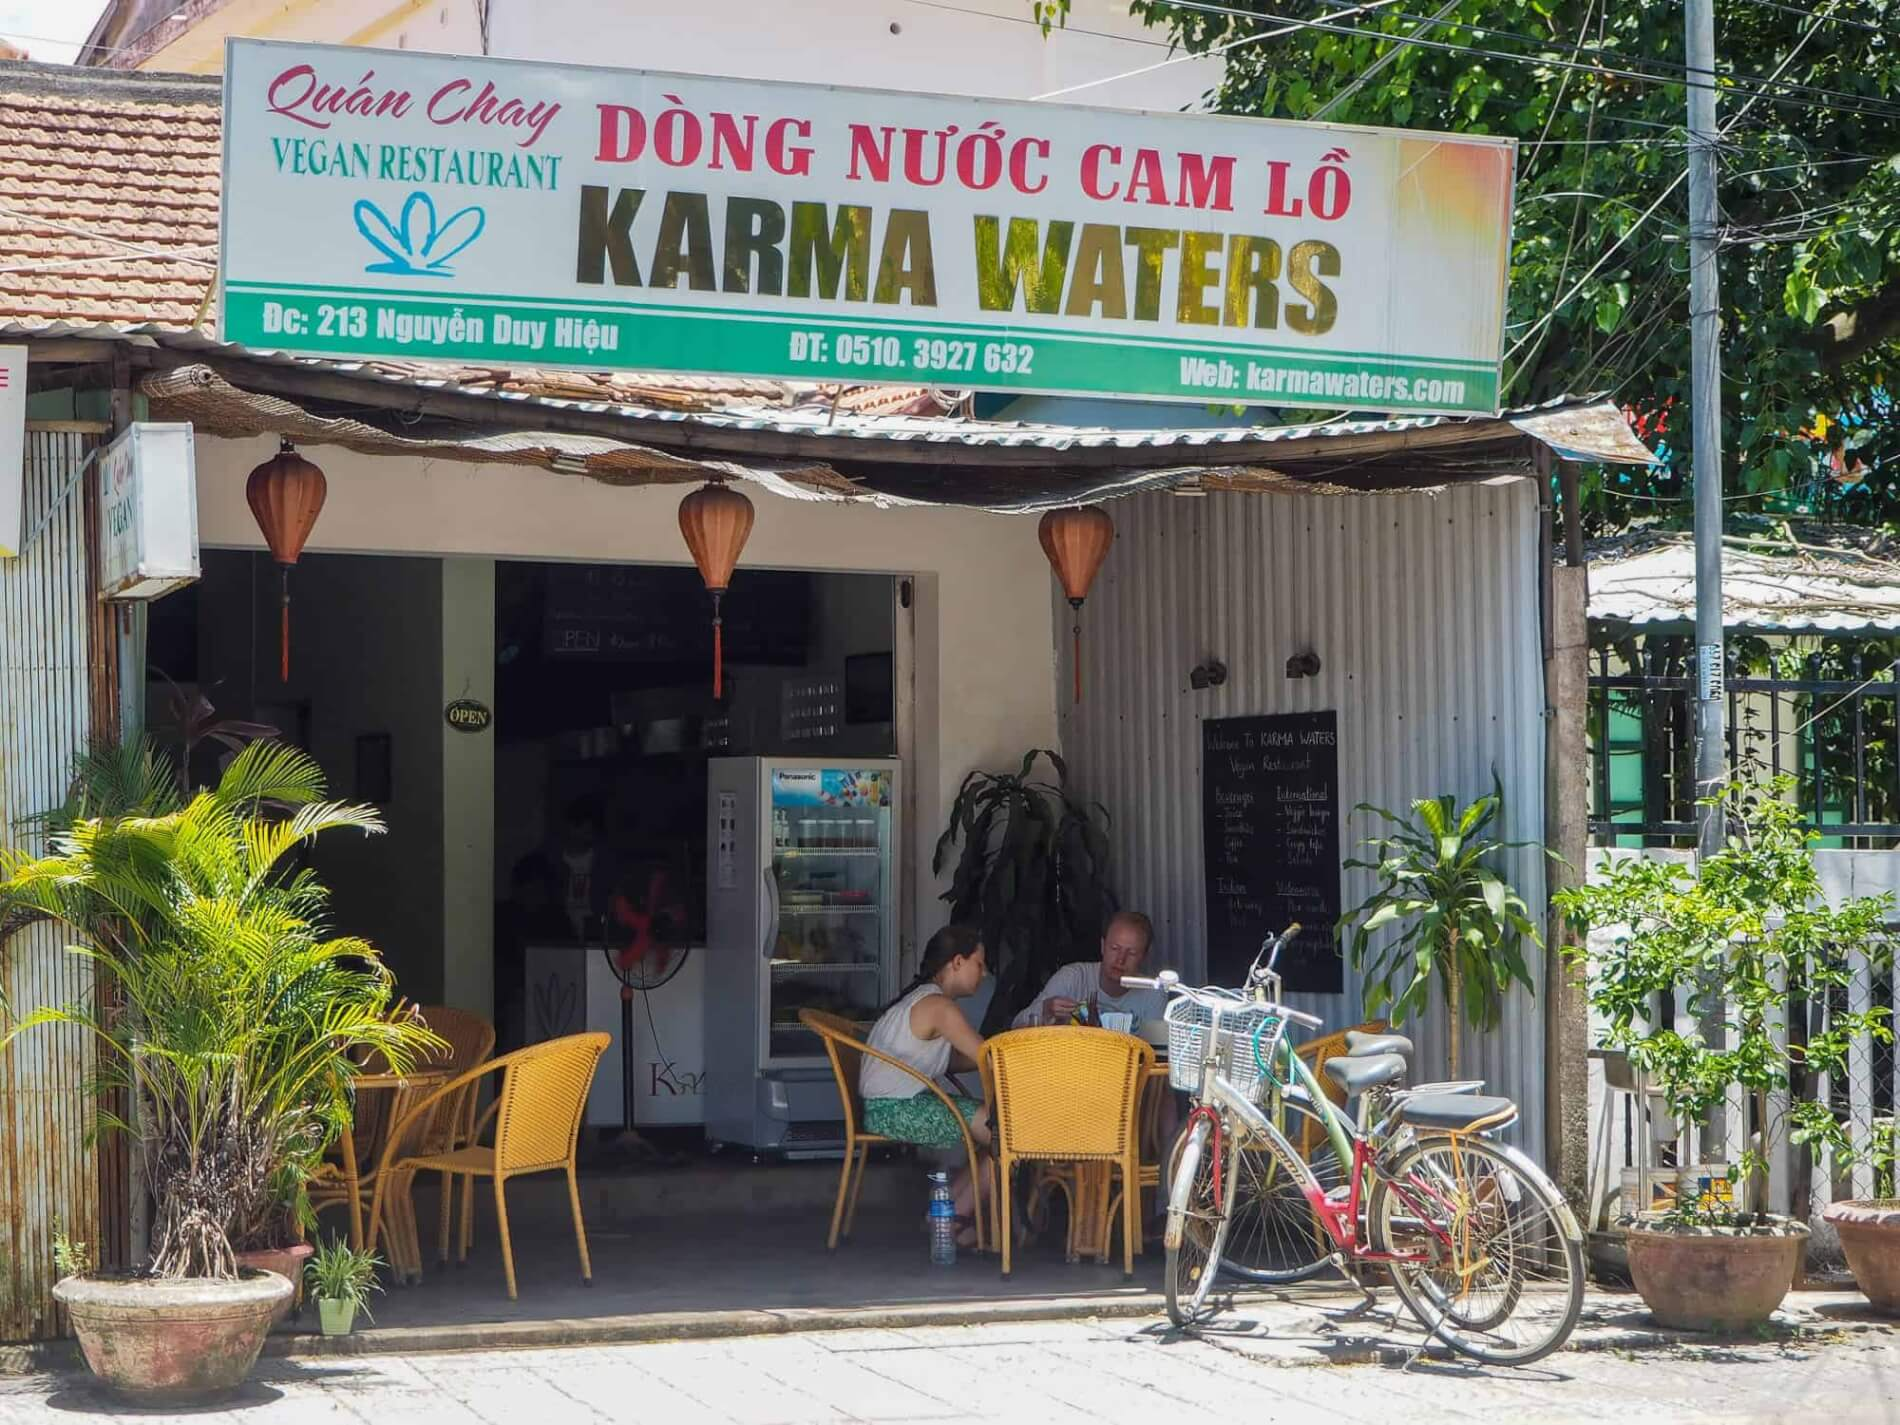 Karma Waters offers vegetarian and vegan options